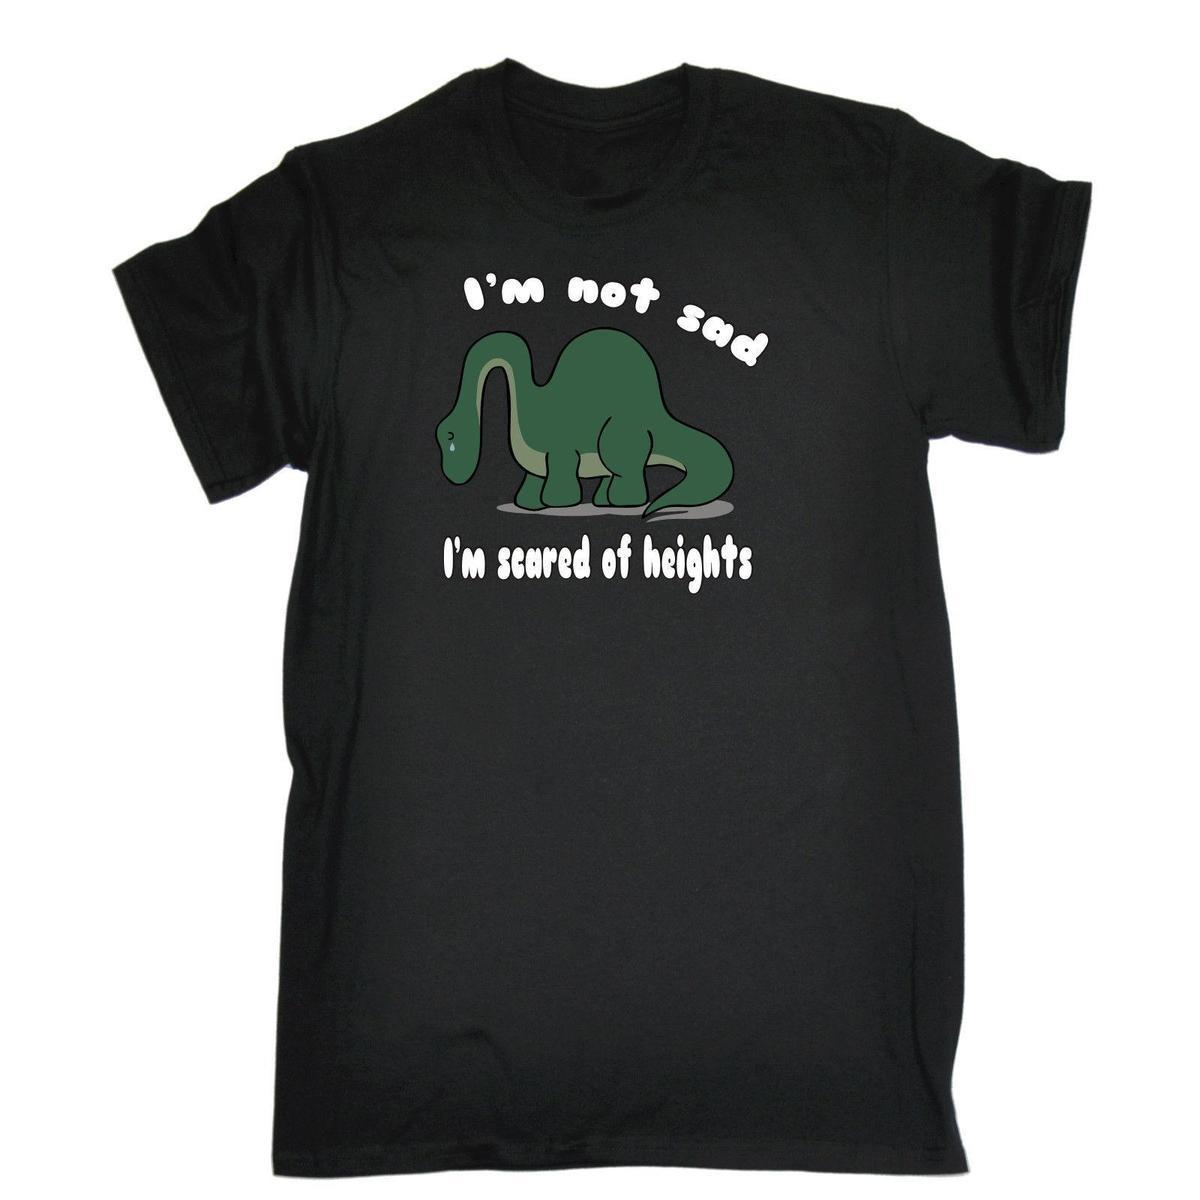 29b681491904 Im Not Sad Im Scared Of Heights Dinosaur T SHIRT Cute Dino Birthday Fashion  Gift Amusing T Shirts With T Shirt From Jie45, $14.67| DHgate.Com